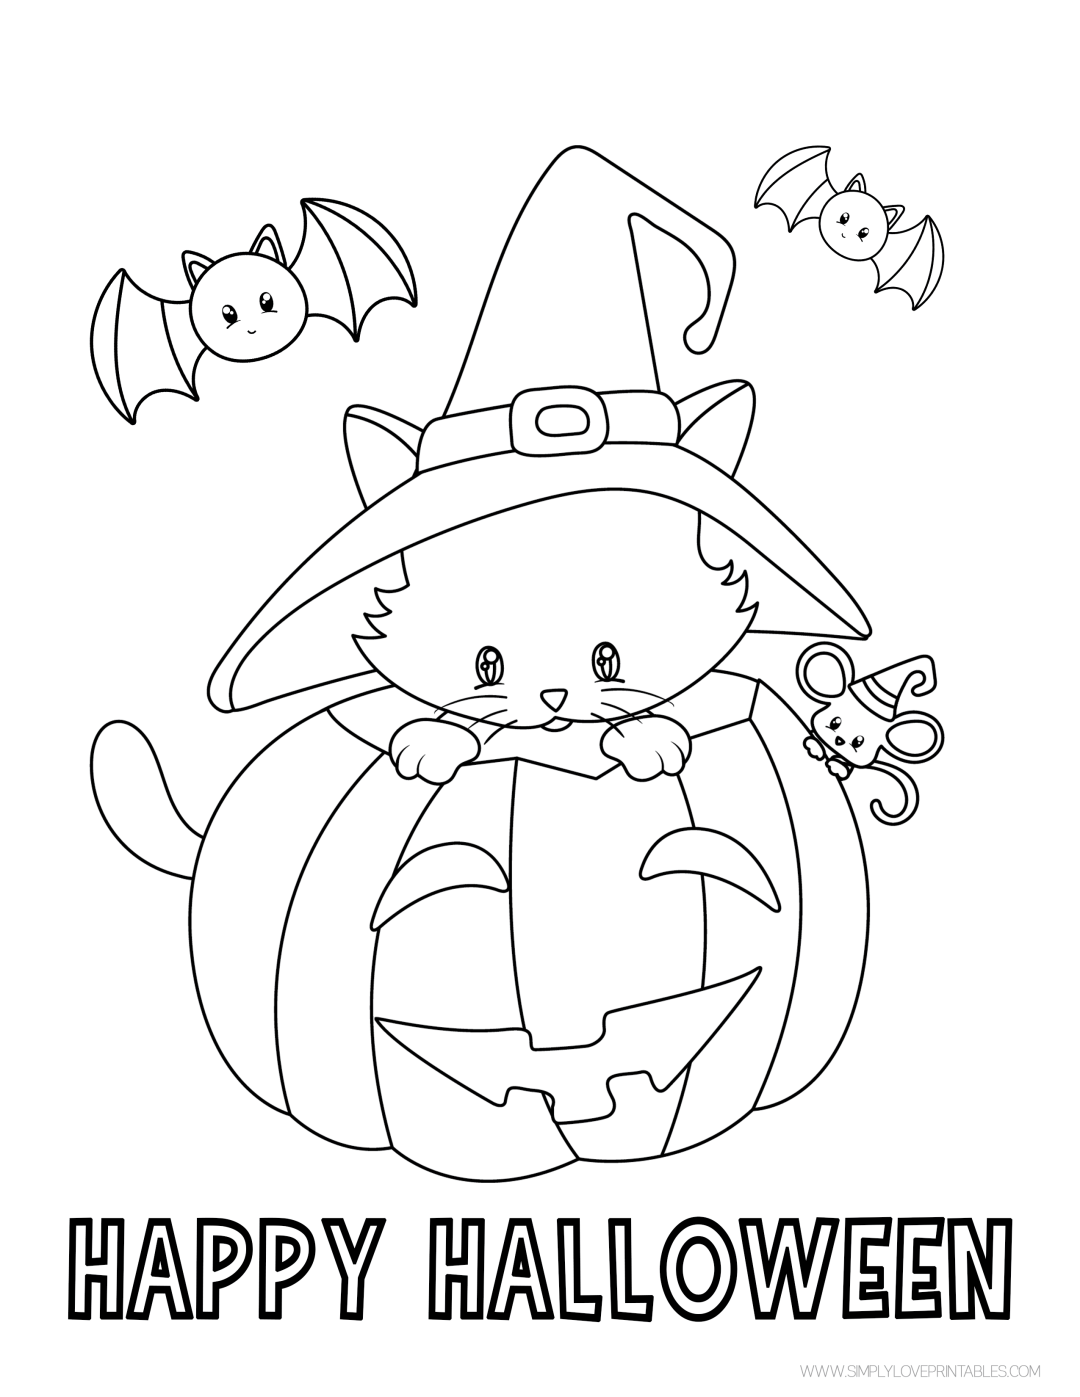 Free Printable Happy Halloween Coloring Page In 2020 Pumpkin Coloring Pages Halloween Printables Coloring Pages